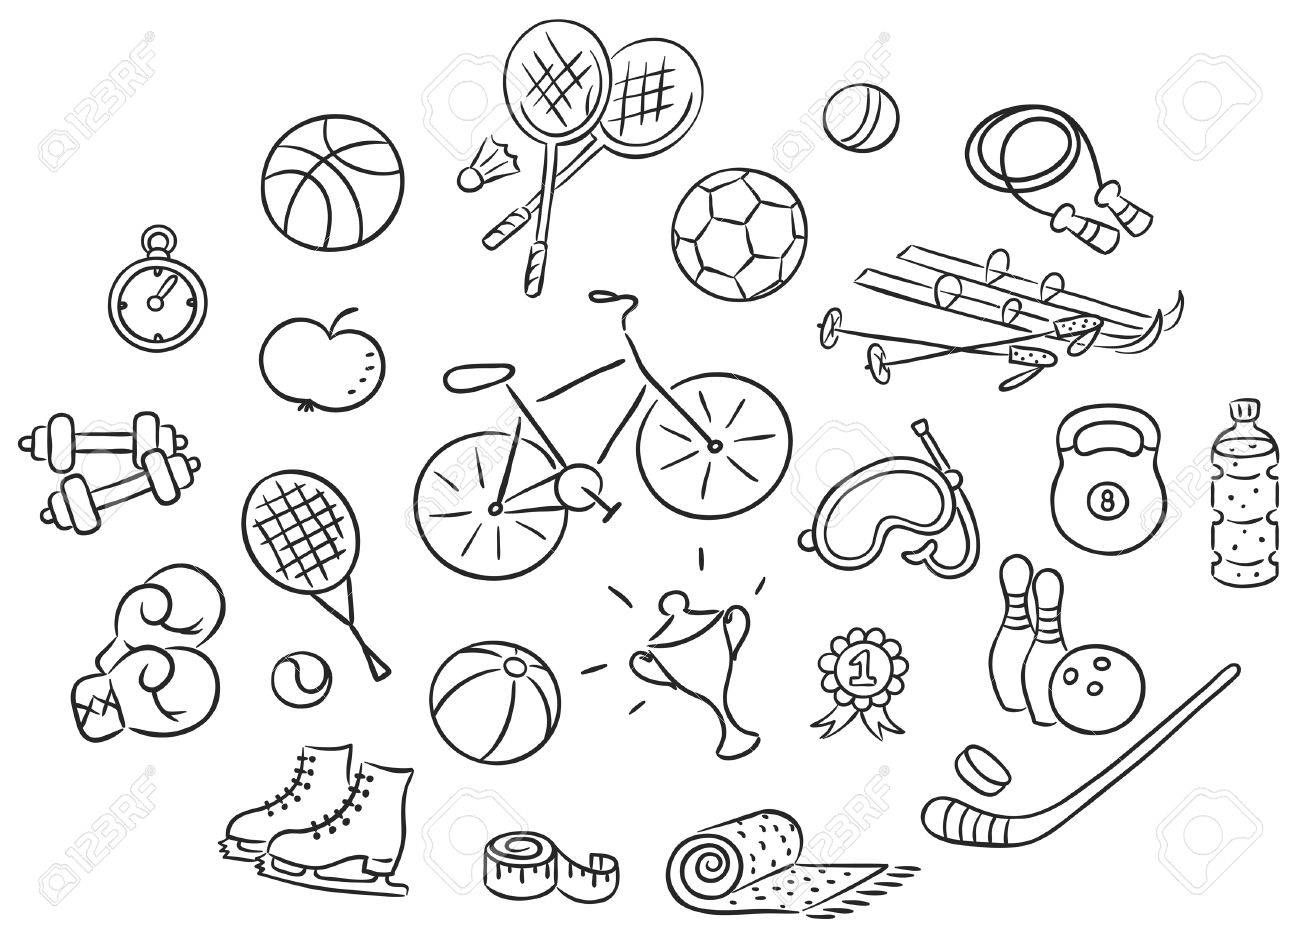 Set Of Cartoon Sport Things Black And White Outline Royalty Free Cliparts Vectors And Stock Illustration Image 50905593